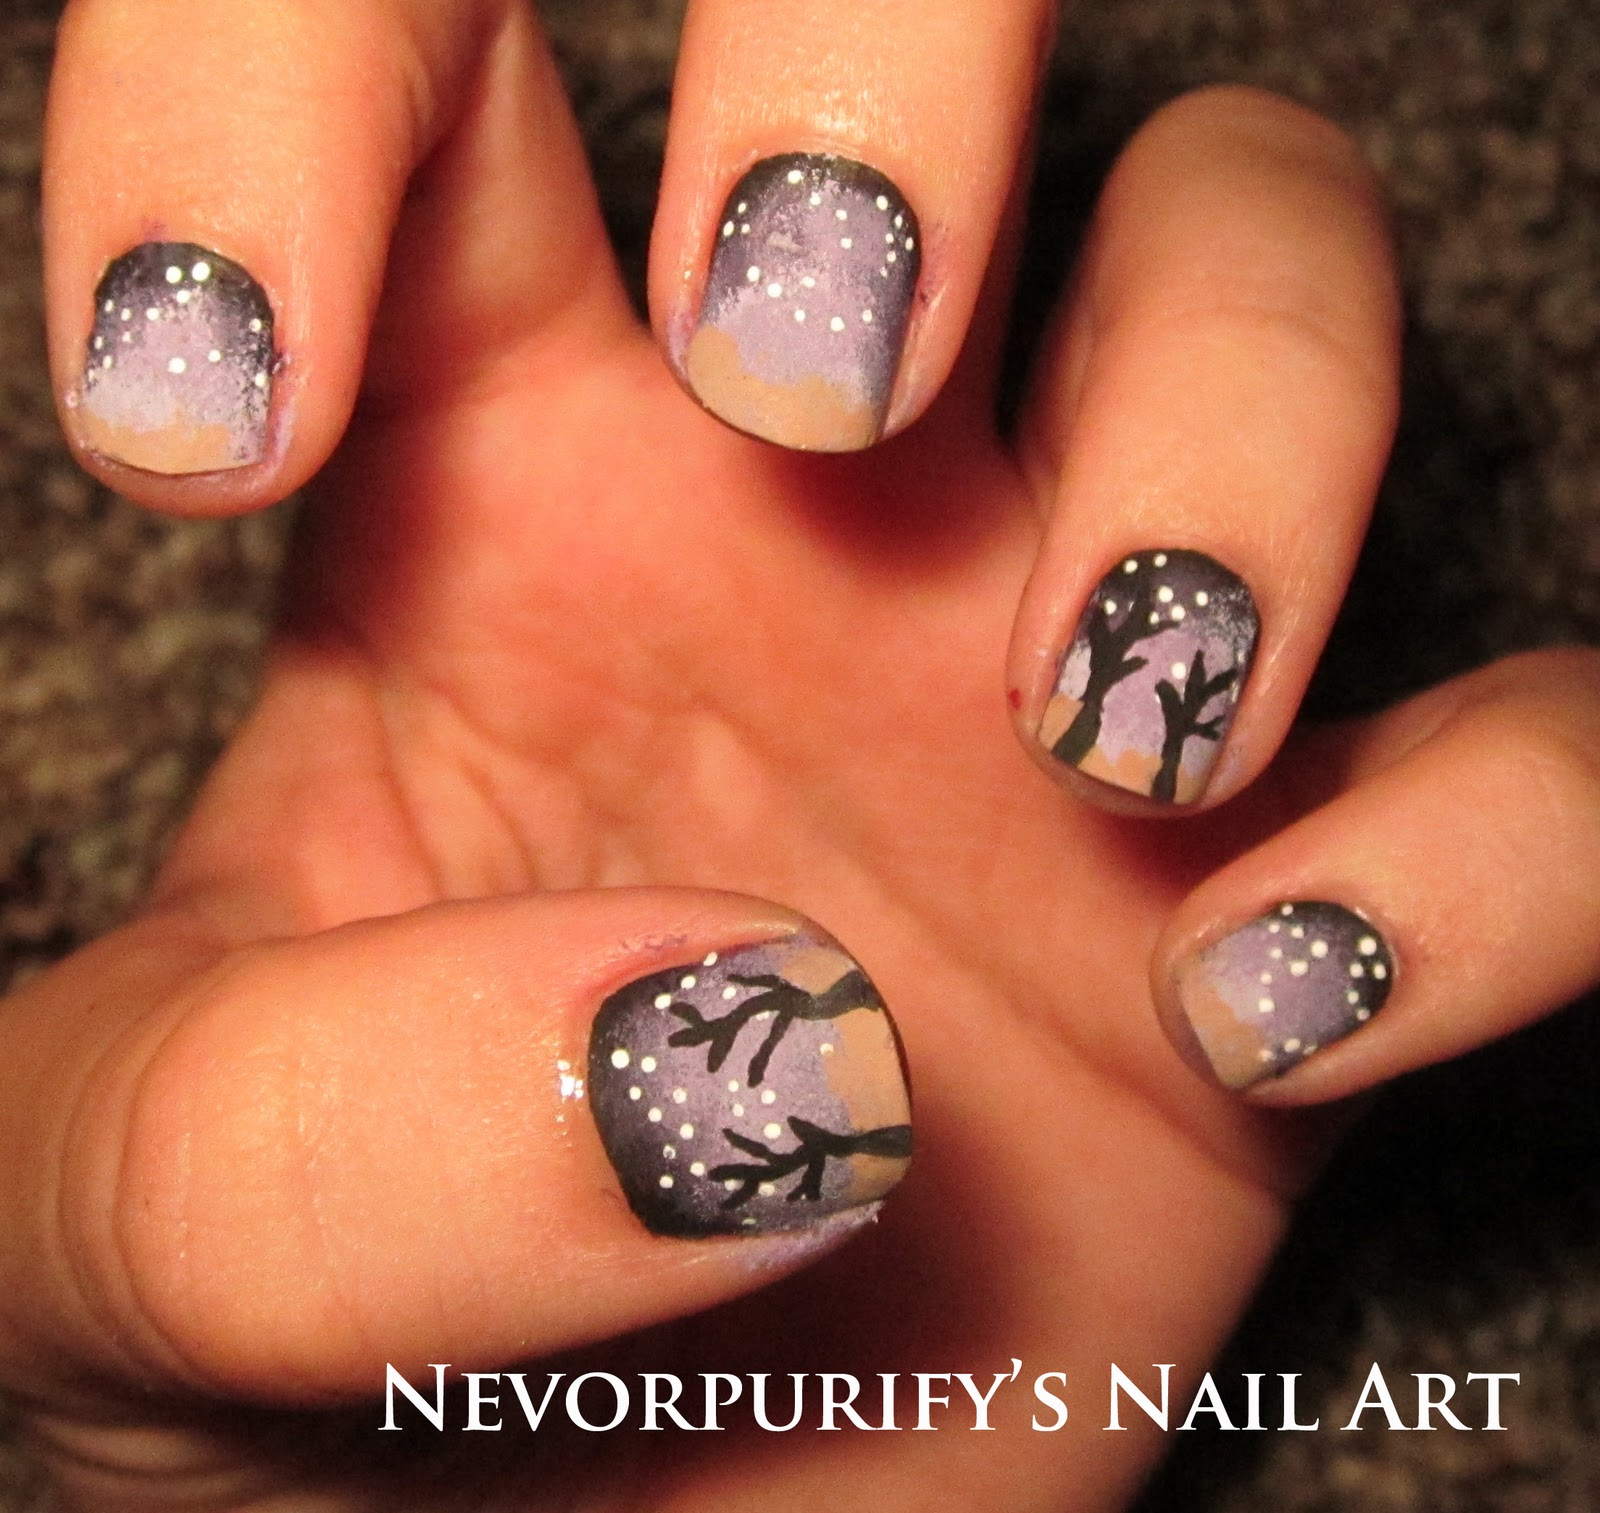 Nail Art Night: Nevorpurify's Nail Art